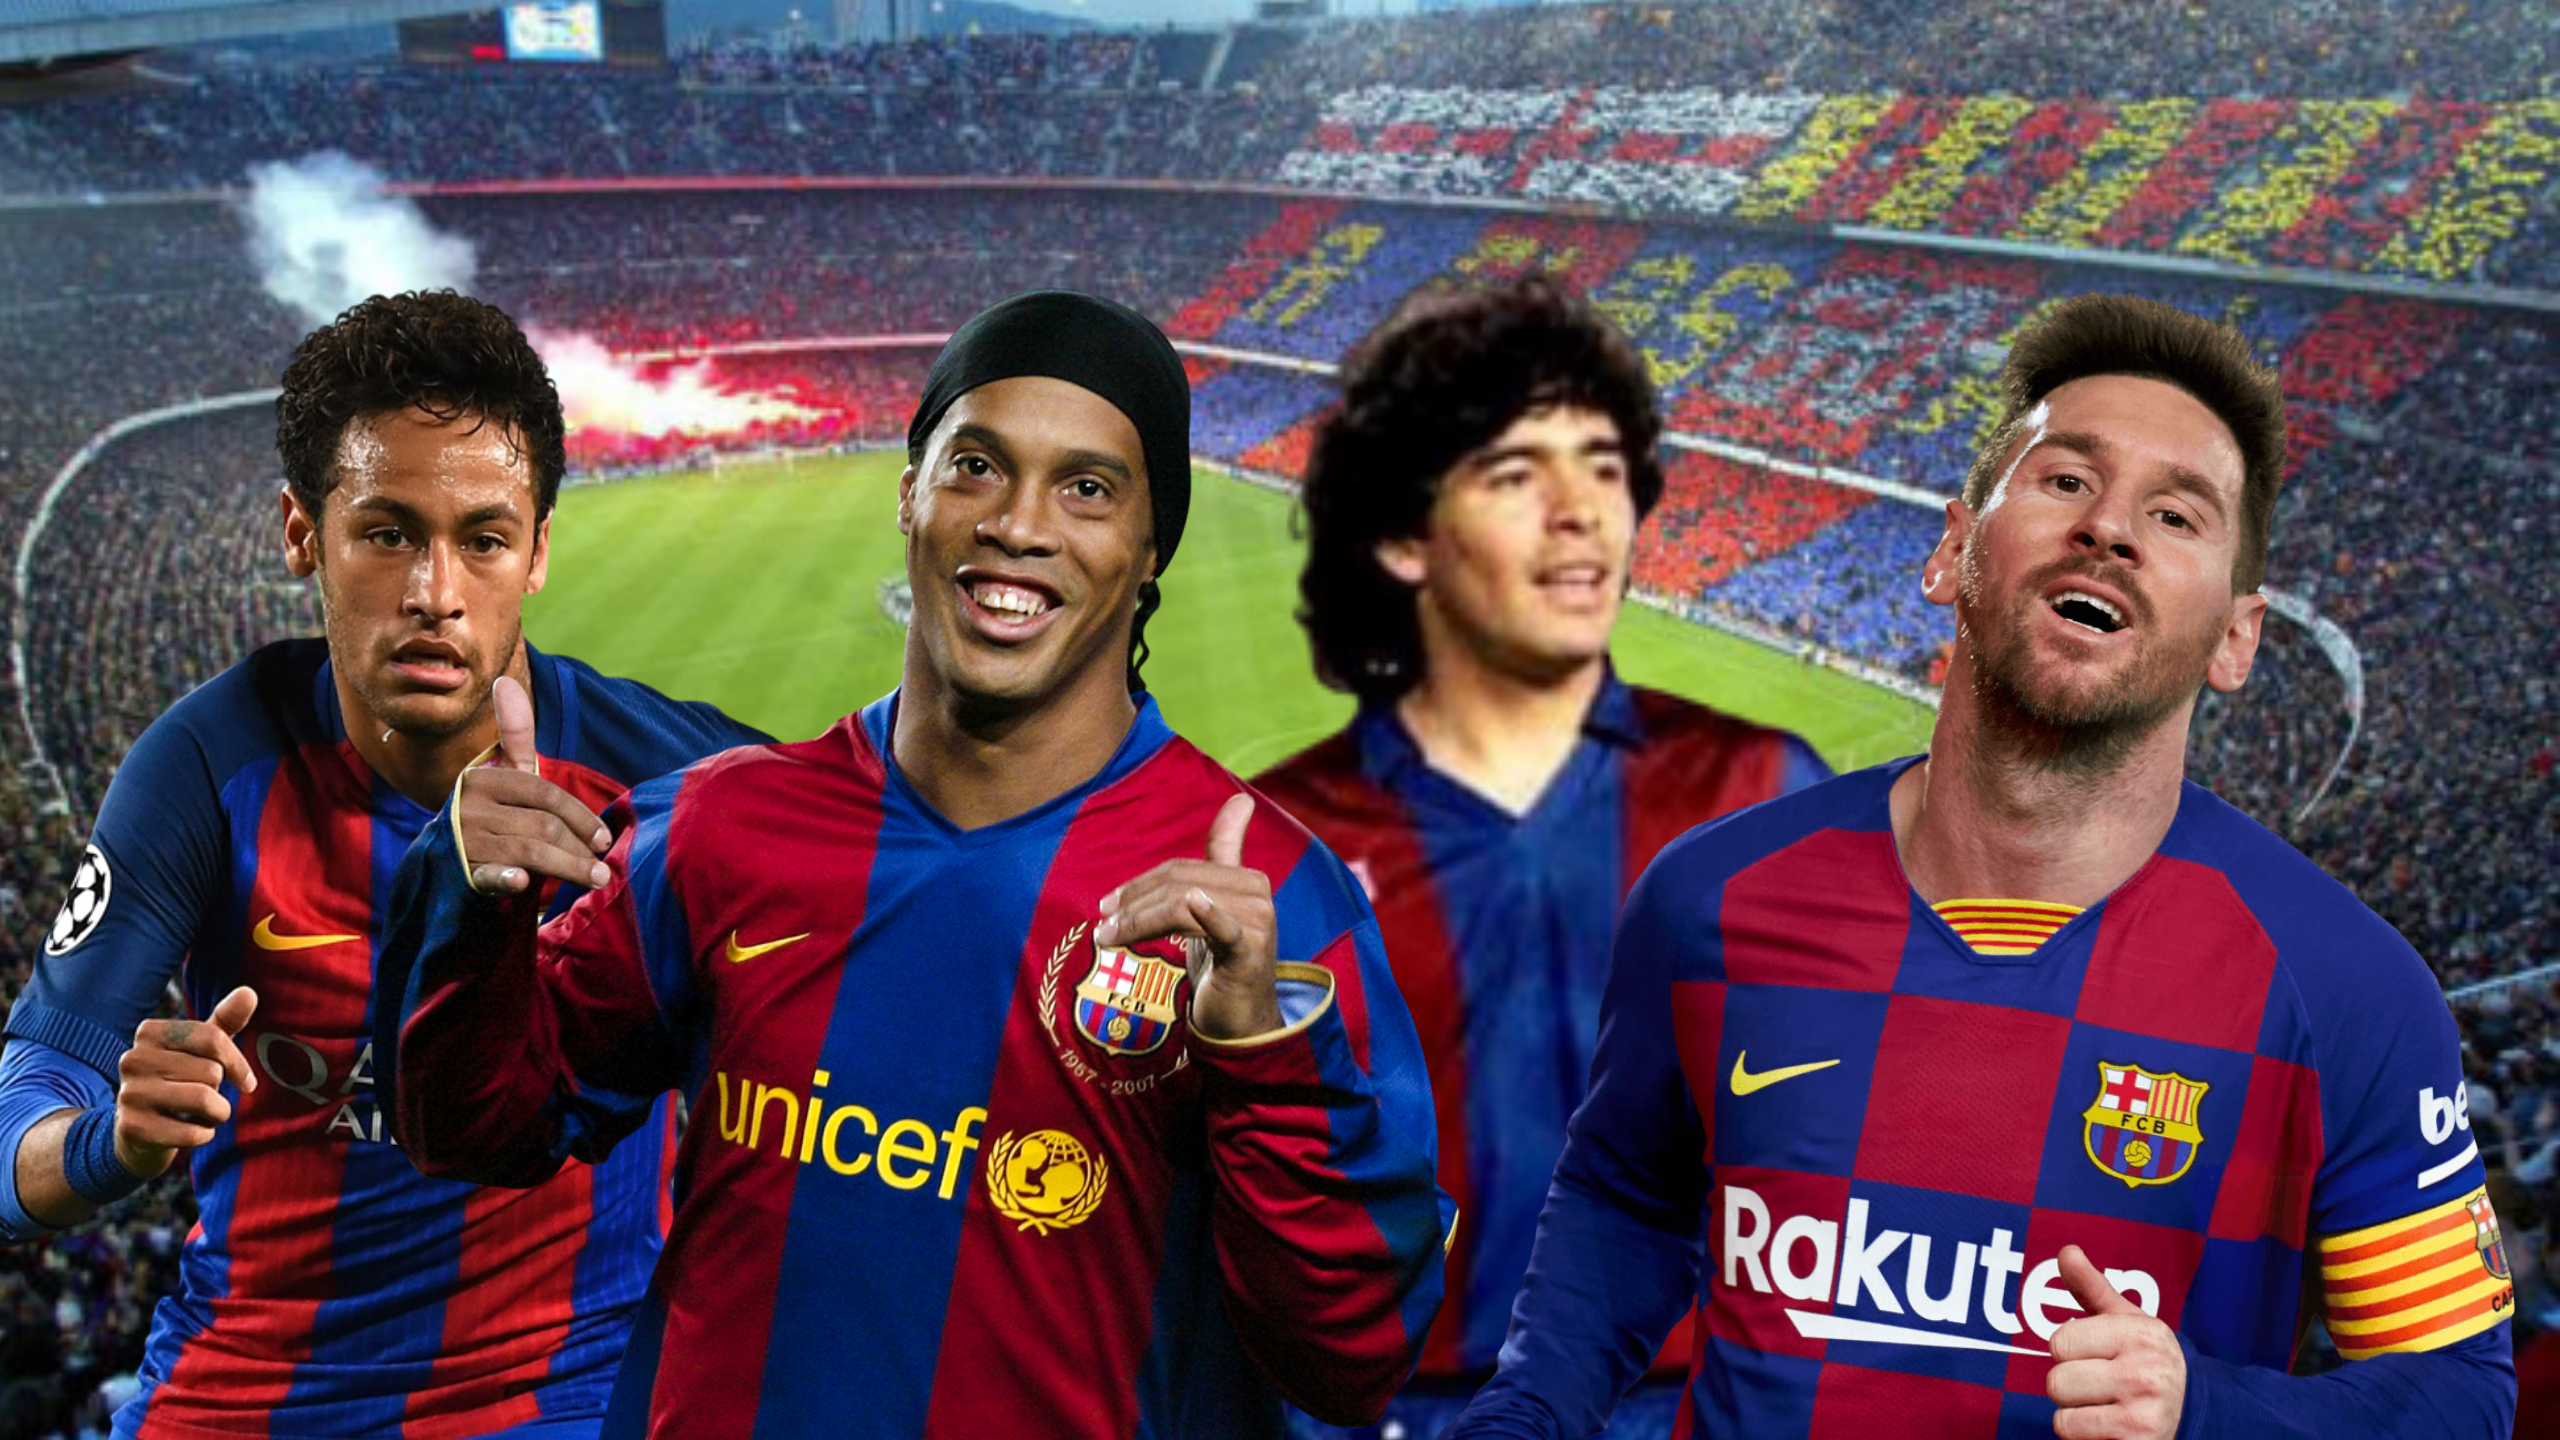 Barcelona S Greatest Players Of All Time Have Been Ranked Lionel Messi Only Third Sportbible